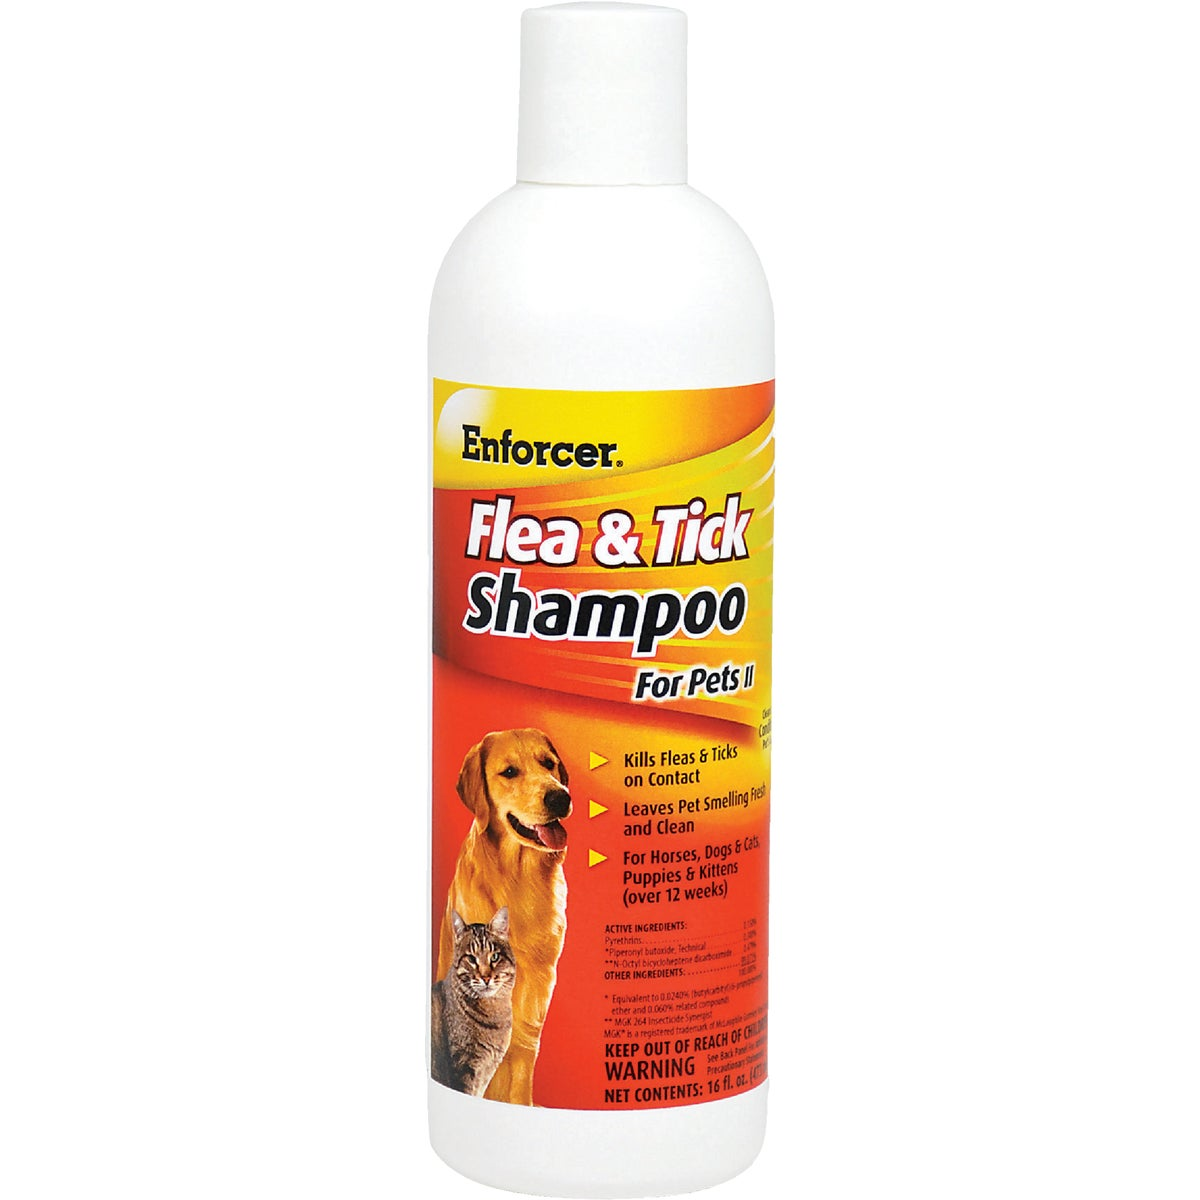 FLEA/TICK PET SHAMPOO - PS16 by Zep Enforcer Inc